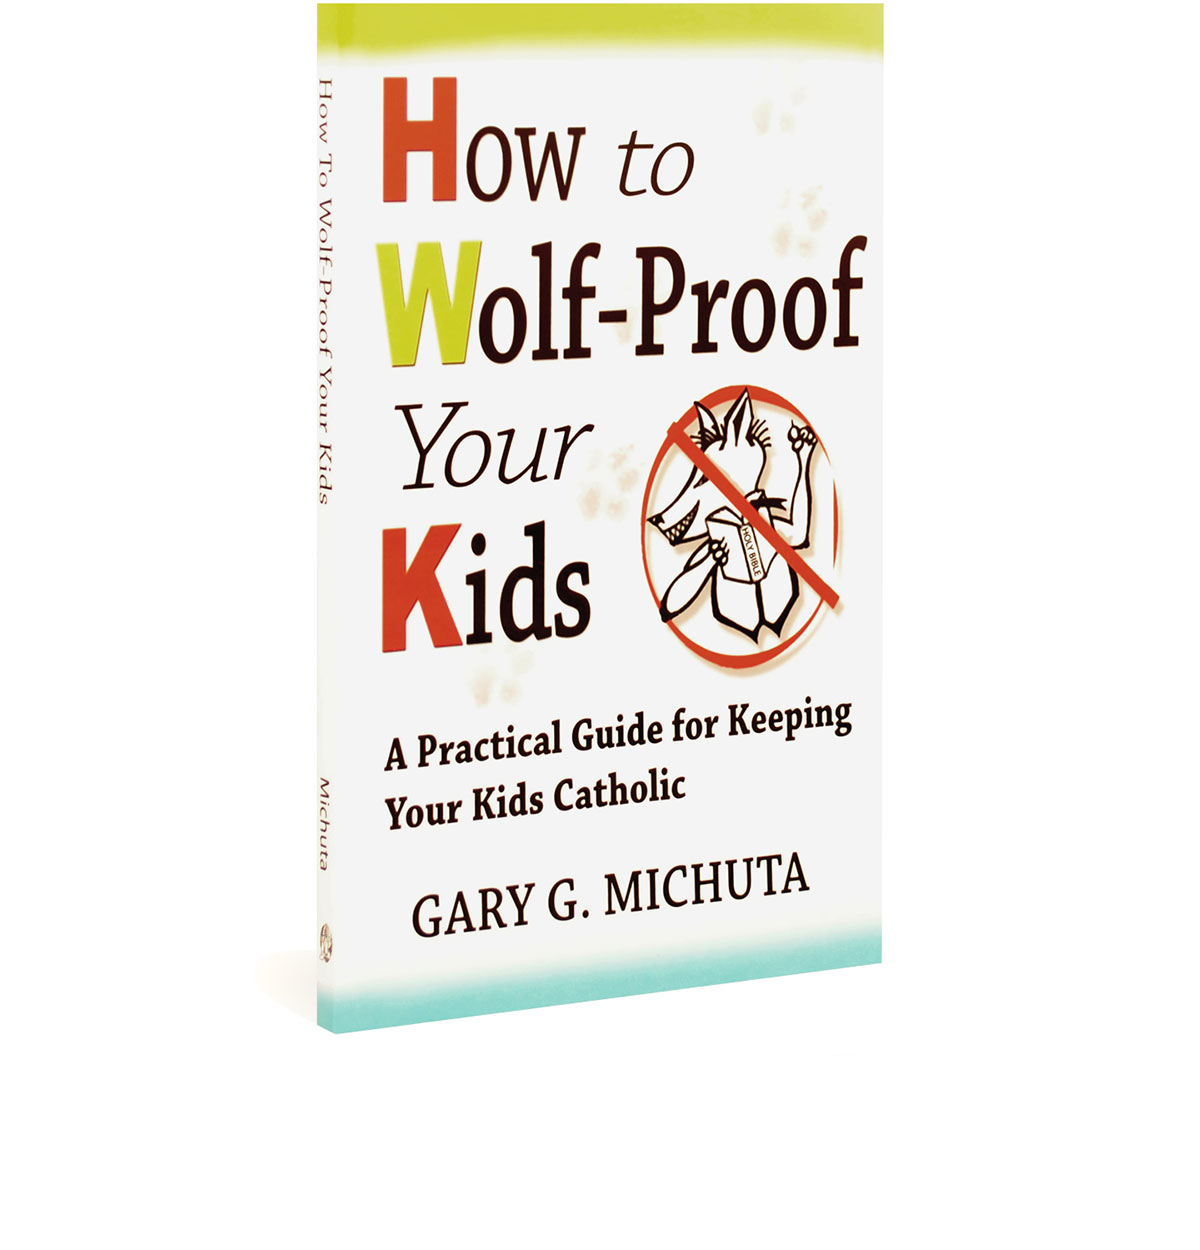 how-to-wolf-proof-your-kids-michuta.jpg